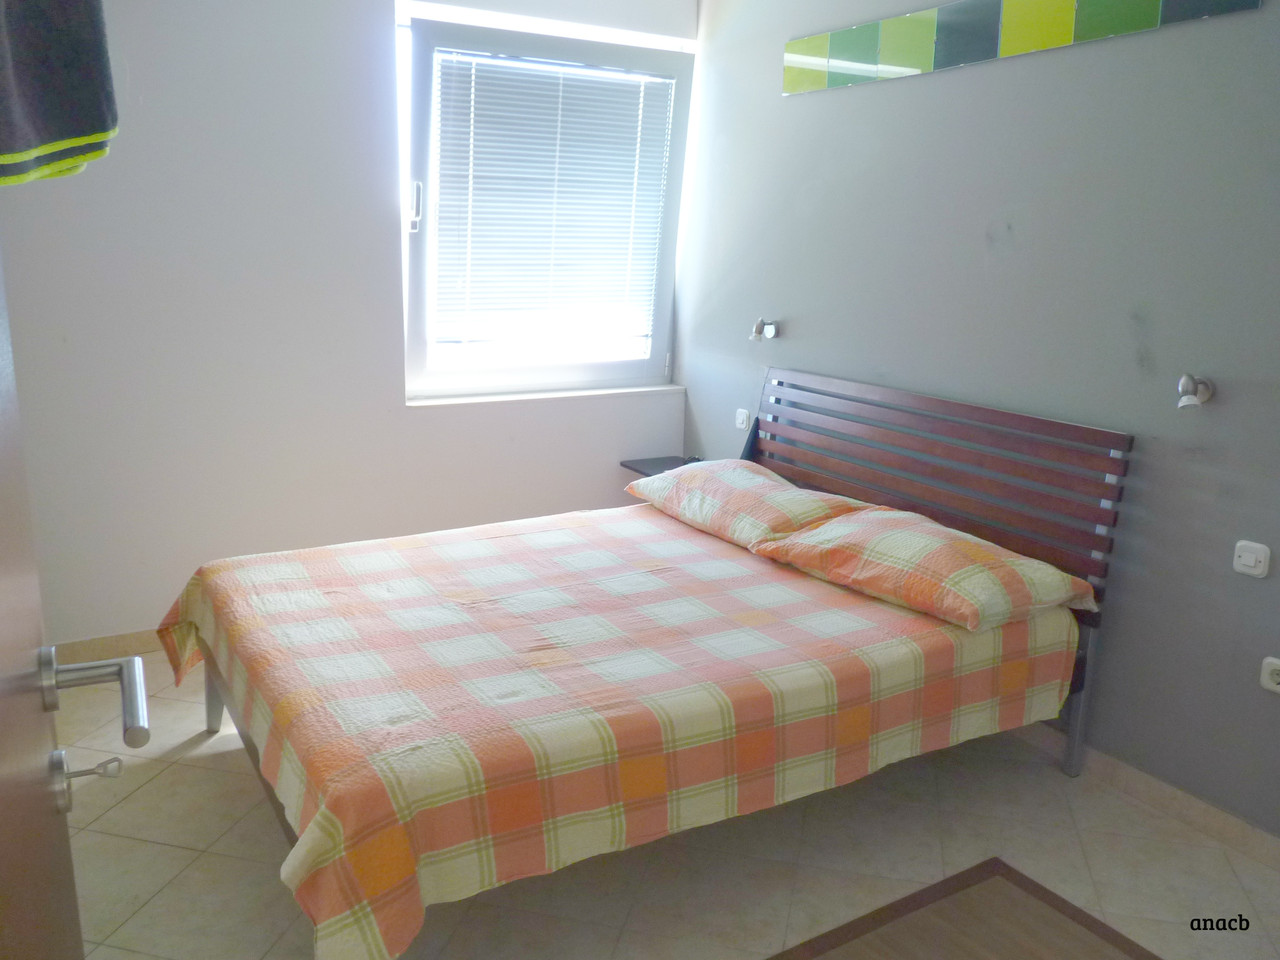 Vila Marer bedroom 2.jpg